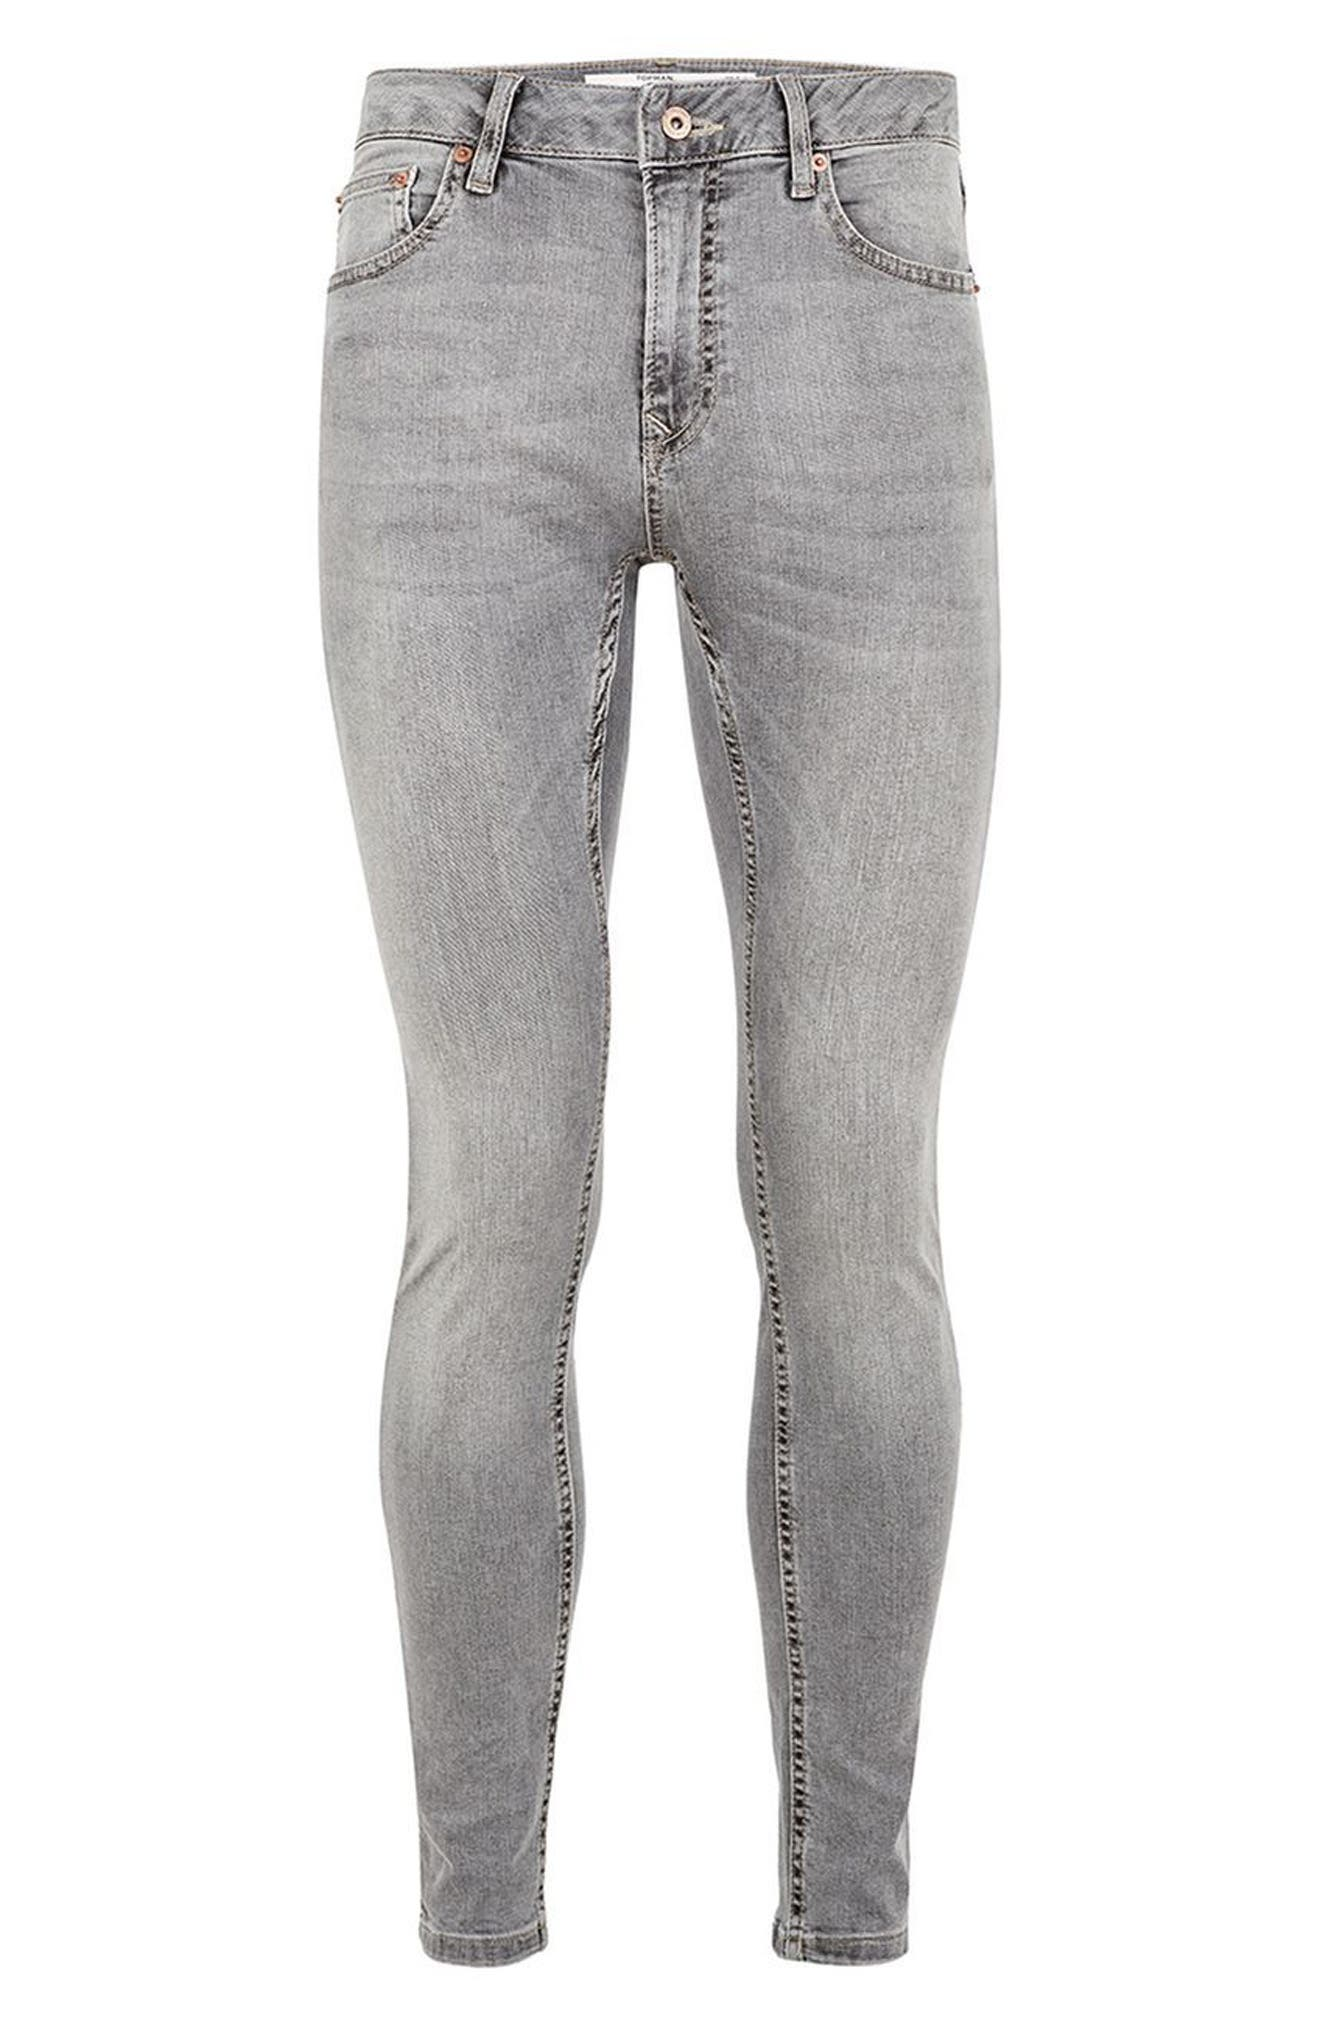 Spray-On Skinny Fit Jeans,                             Alternate thumbnail 4, color,                             020